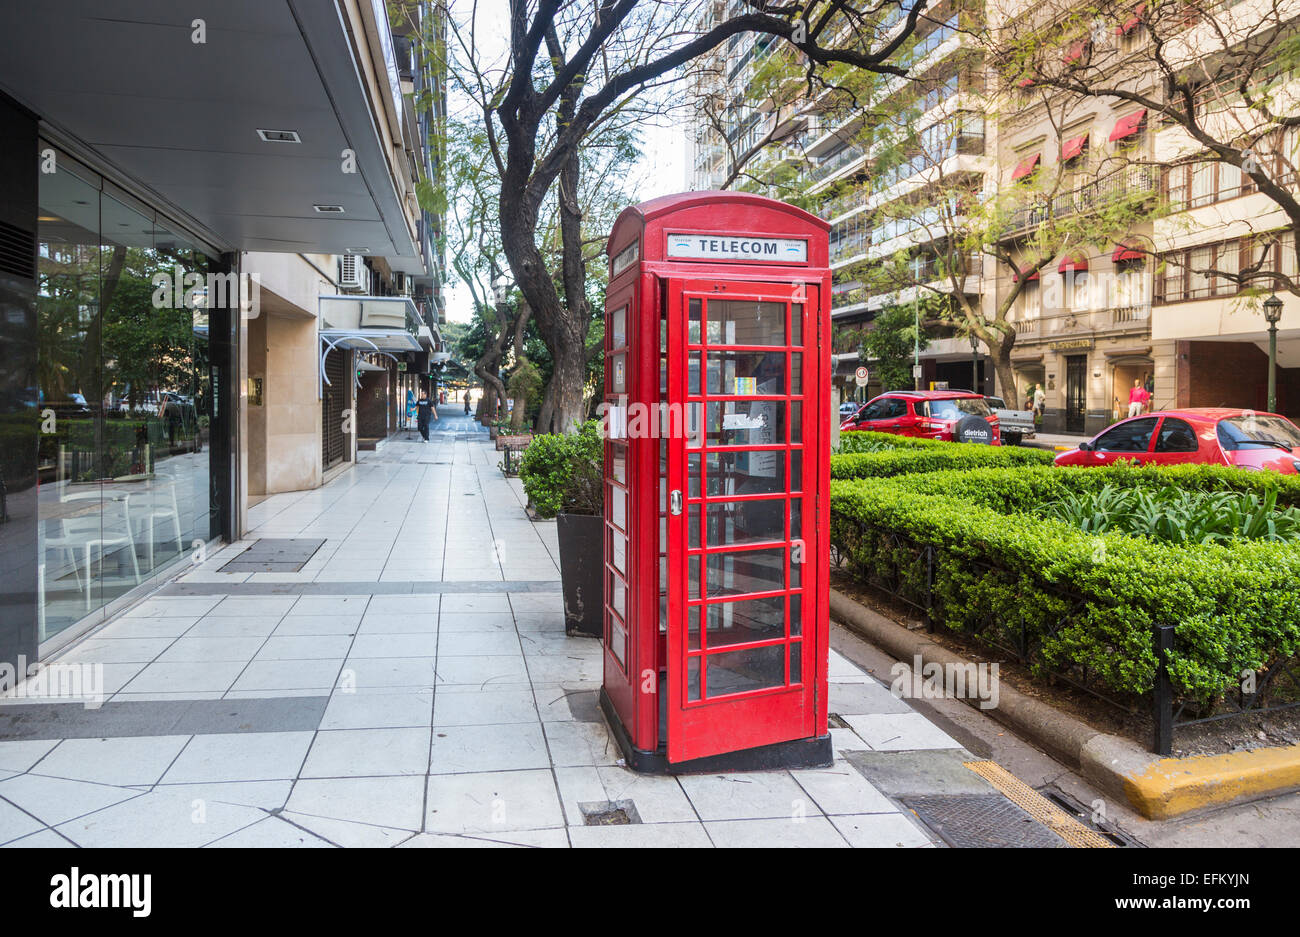 Traditional red British telephone box on the roadside in Recoleta district, downtown Buenos Aires, Argentina - Stock Image